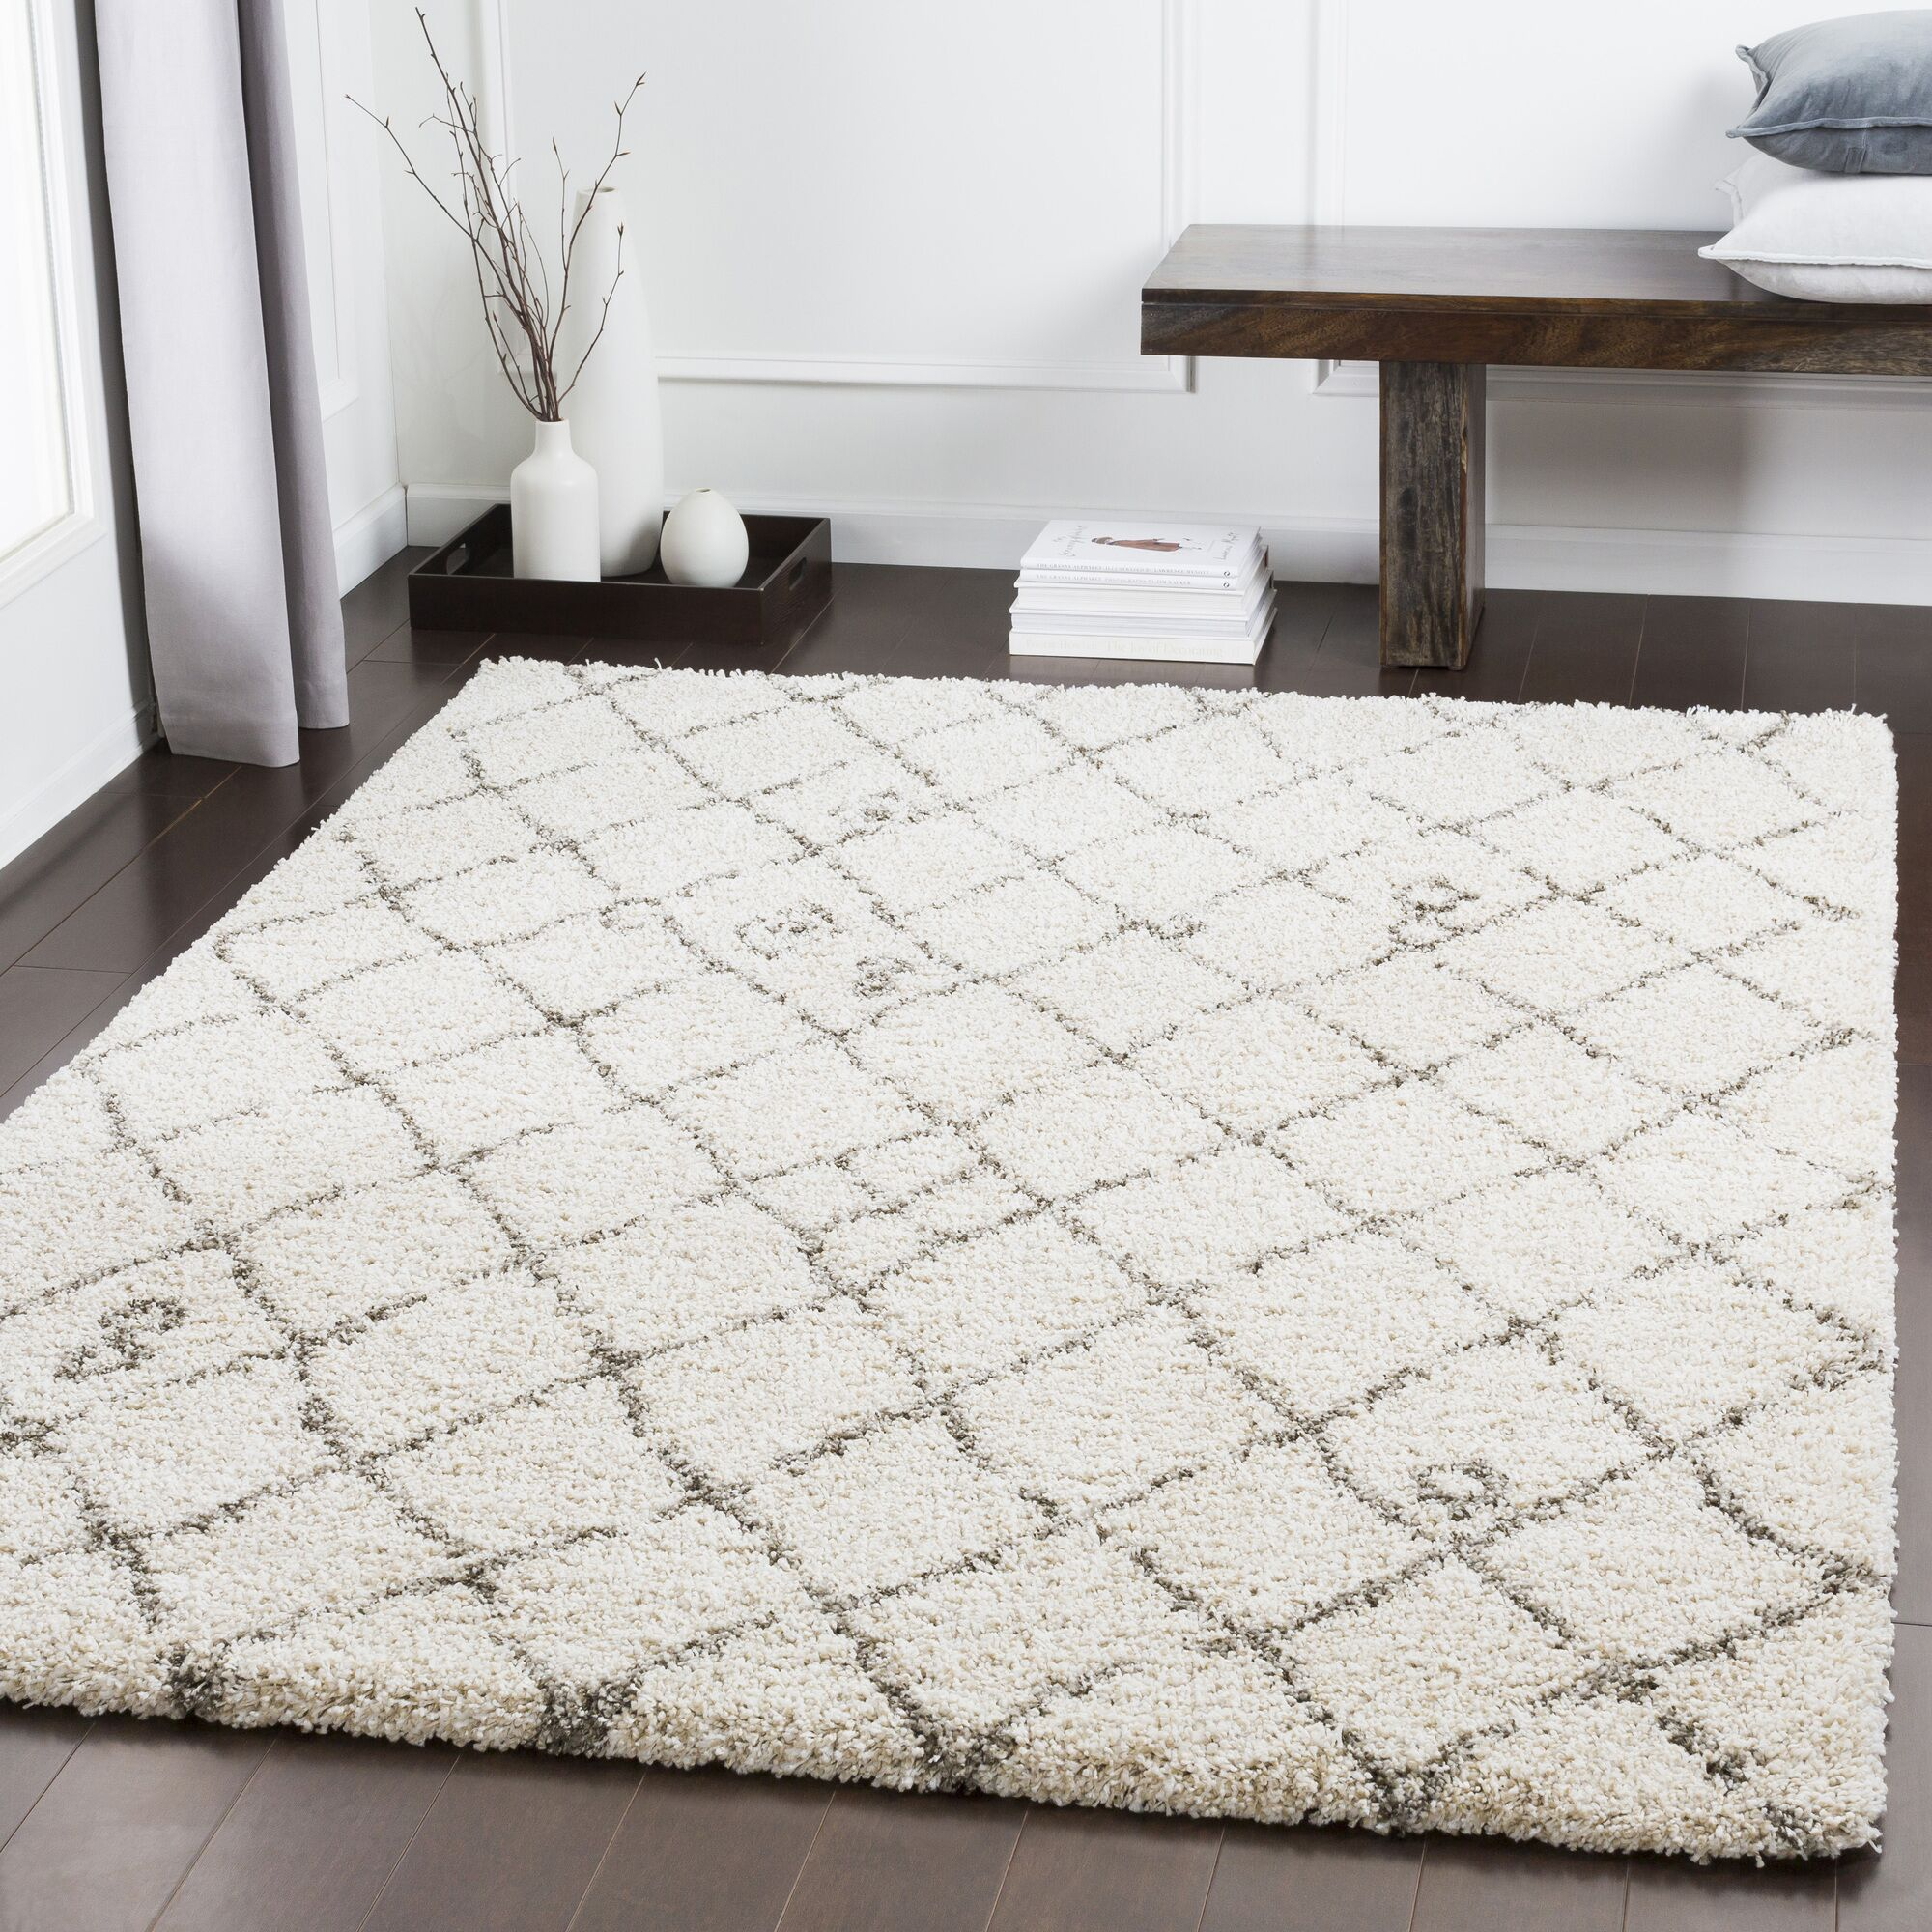 Dileo Trellis Taupe Area Rug Rug Size: Rectangle 7'10